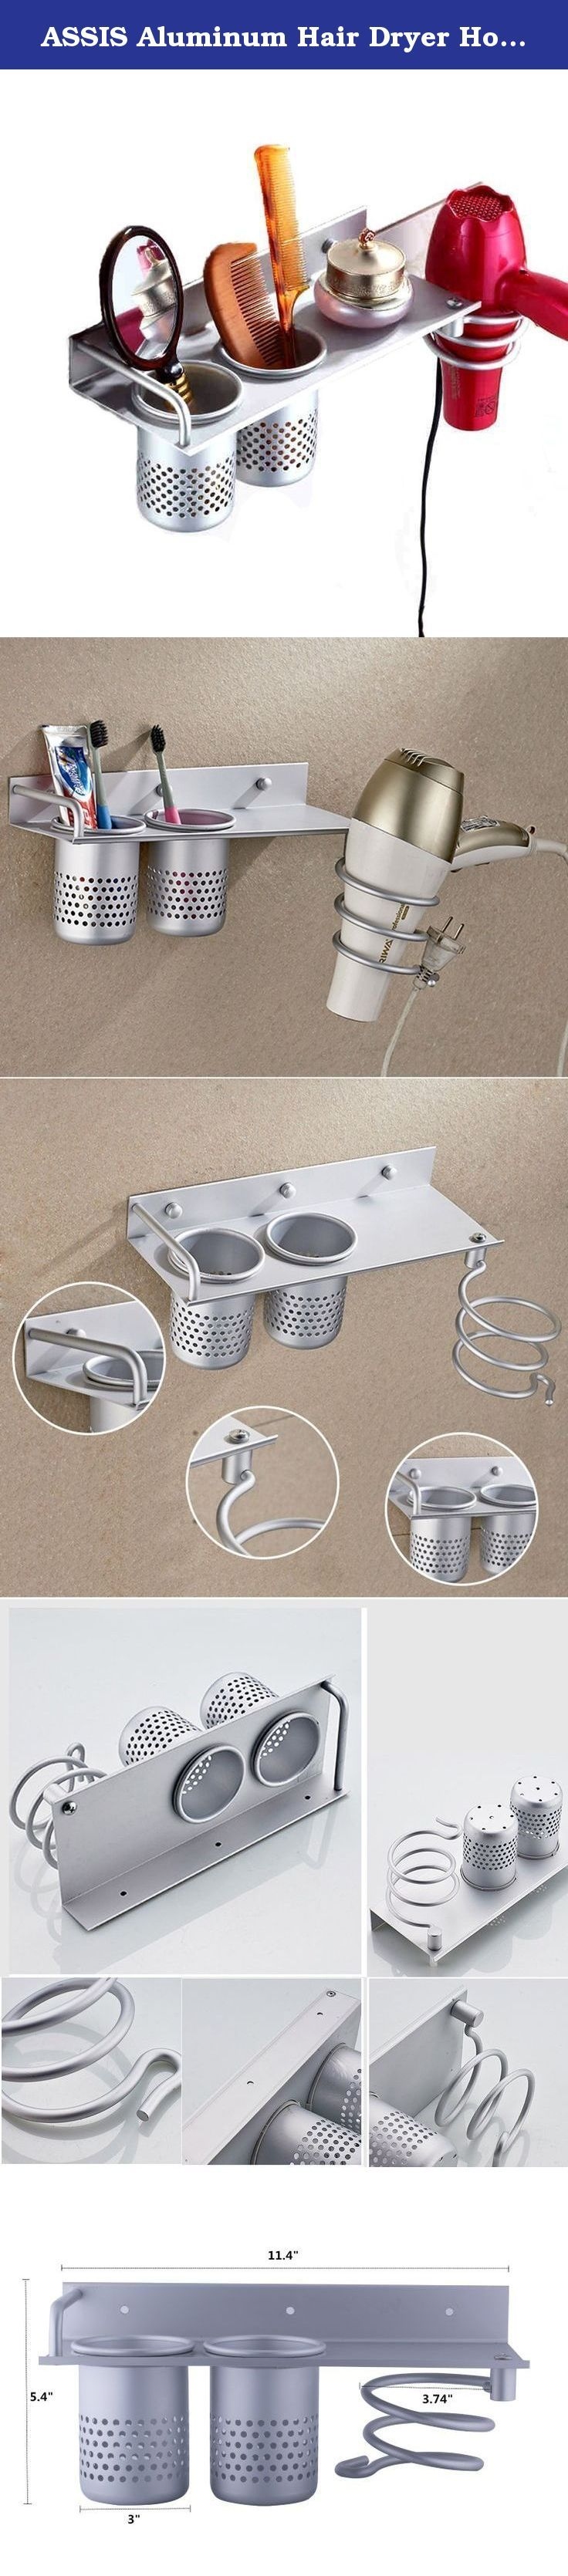 17 best ideas about toothbrush storage on pinterest for Best way to store toothbrush in bathroom